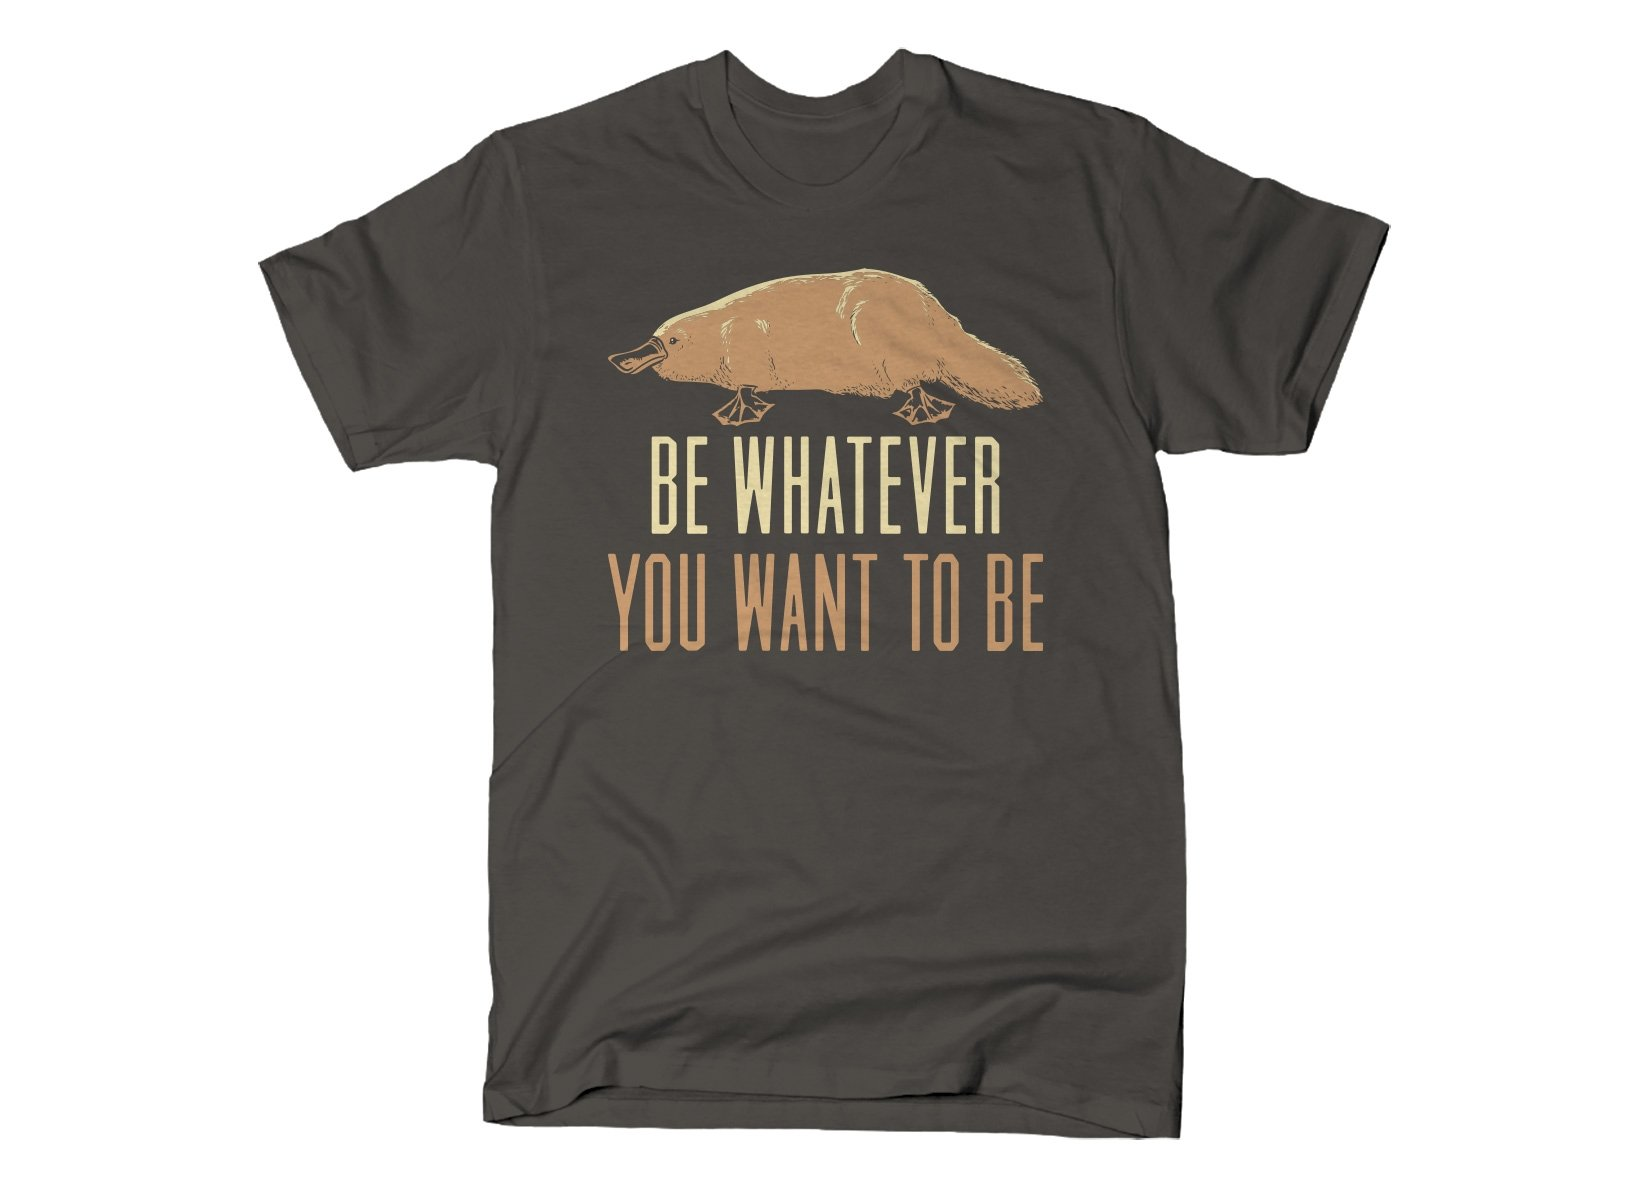 Be Whatever You Want To Be on Mens T-Shirt